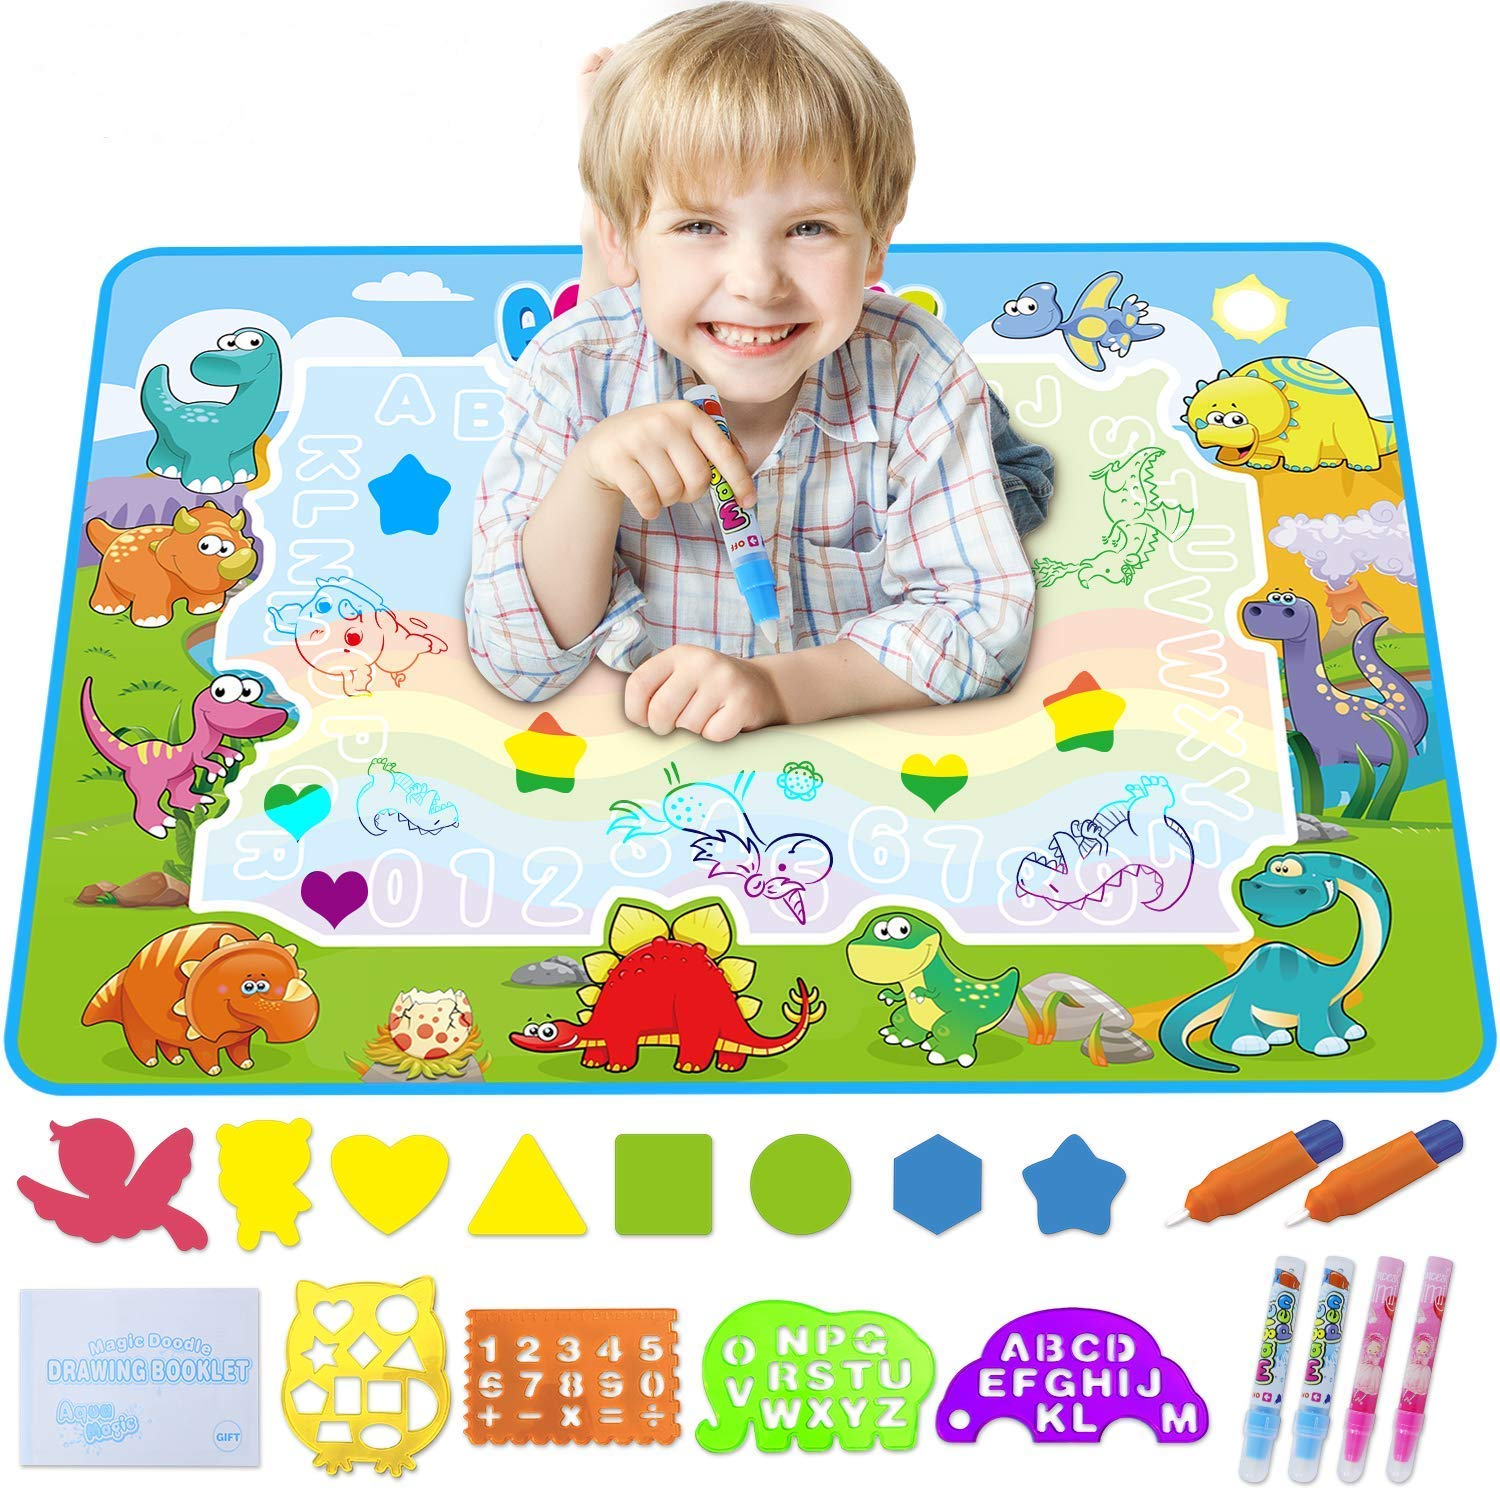 Koviti Aquadoodle Mat 2019 Updated Version, Water Doodle Mat Toy with 20 Drawing Kits, Large Aqua Magic Mat Educational Toys Gifts for 2 3 4 5 6 7+ Year Old Toddlers Kids Girls Boys 39.3'' X 27.5'' by Koviti